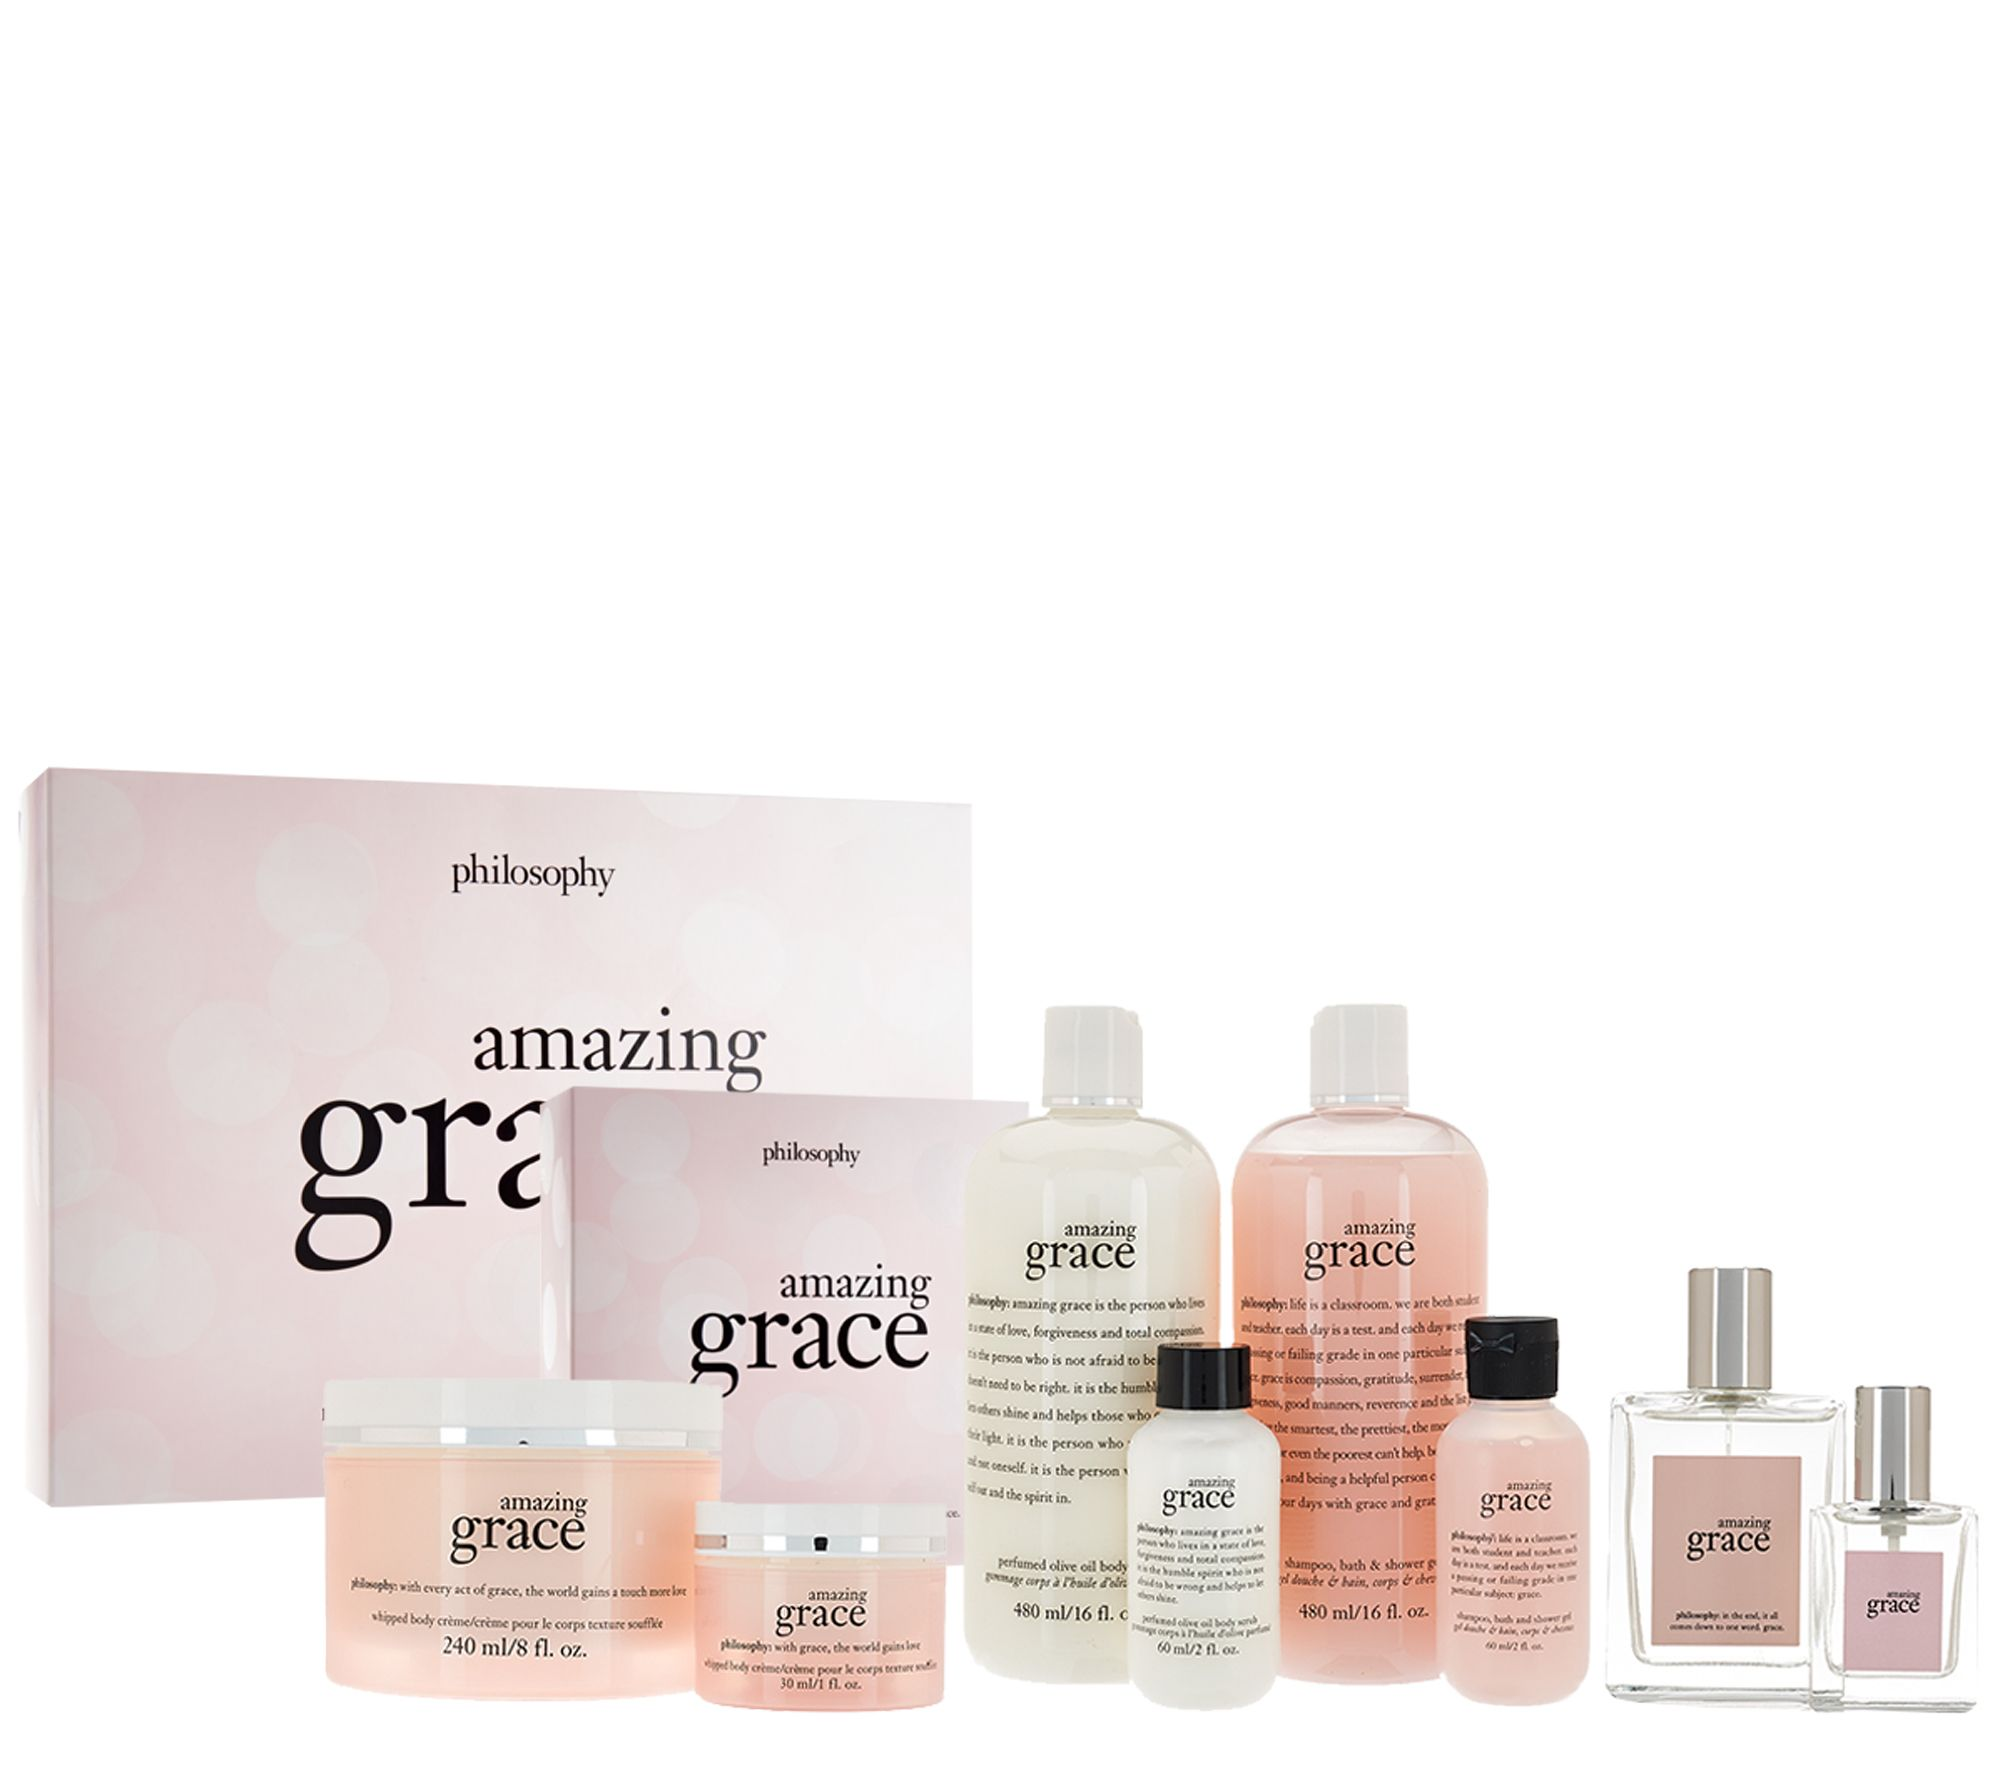 philosophy 8 piece grace & love fragrance collection - A268981